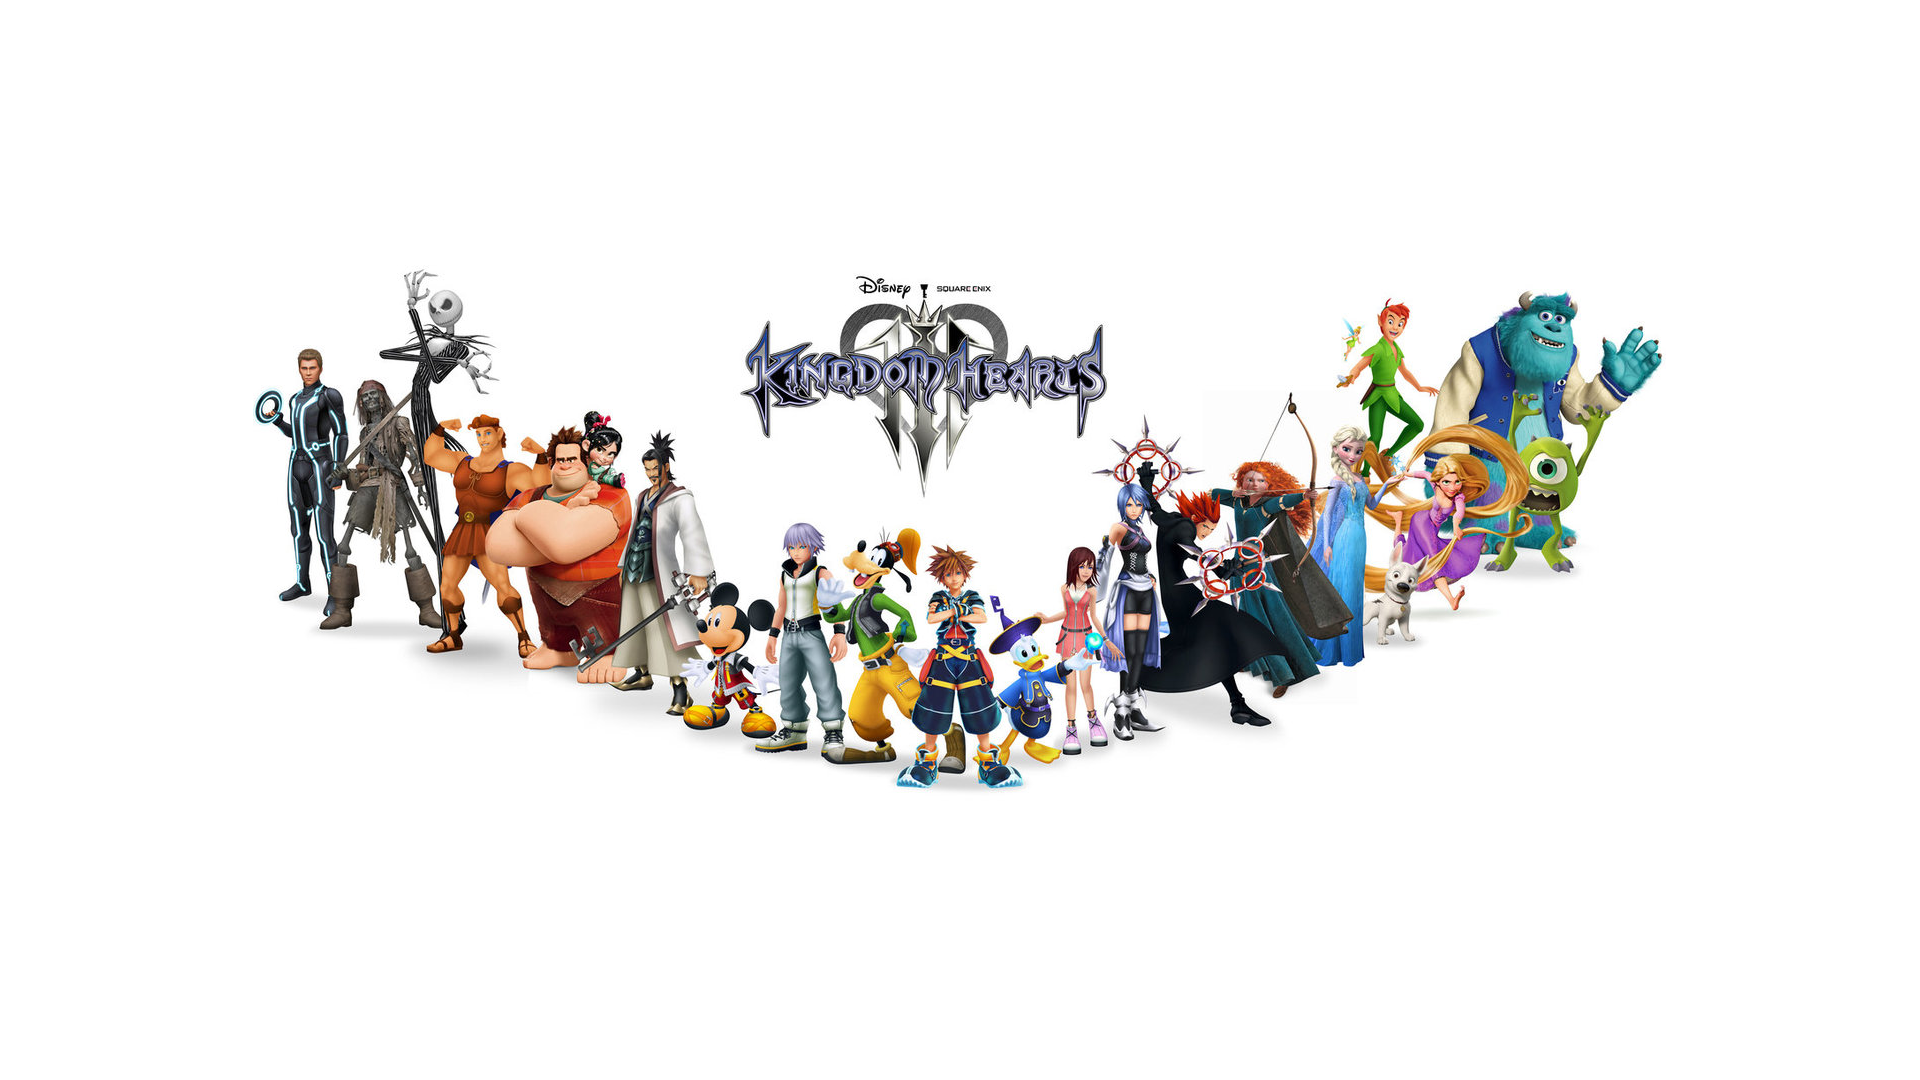 kingdom hearts 3 game desktop wallpaper 67186